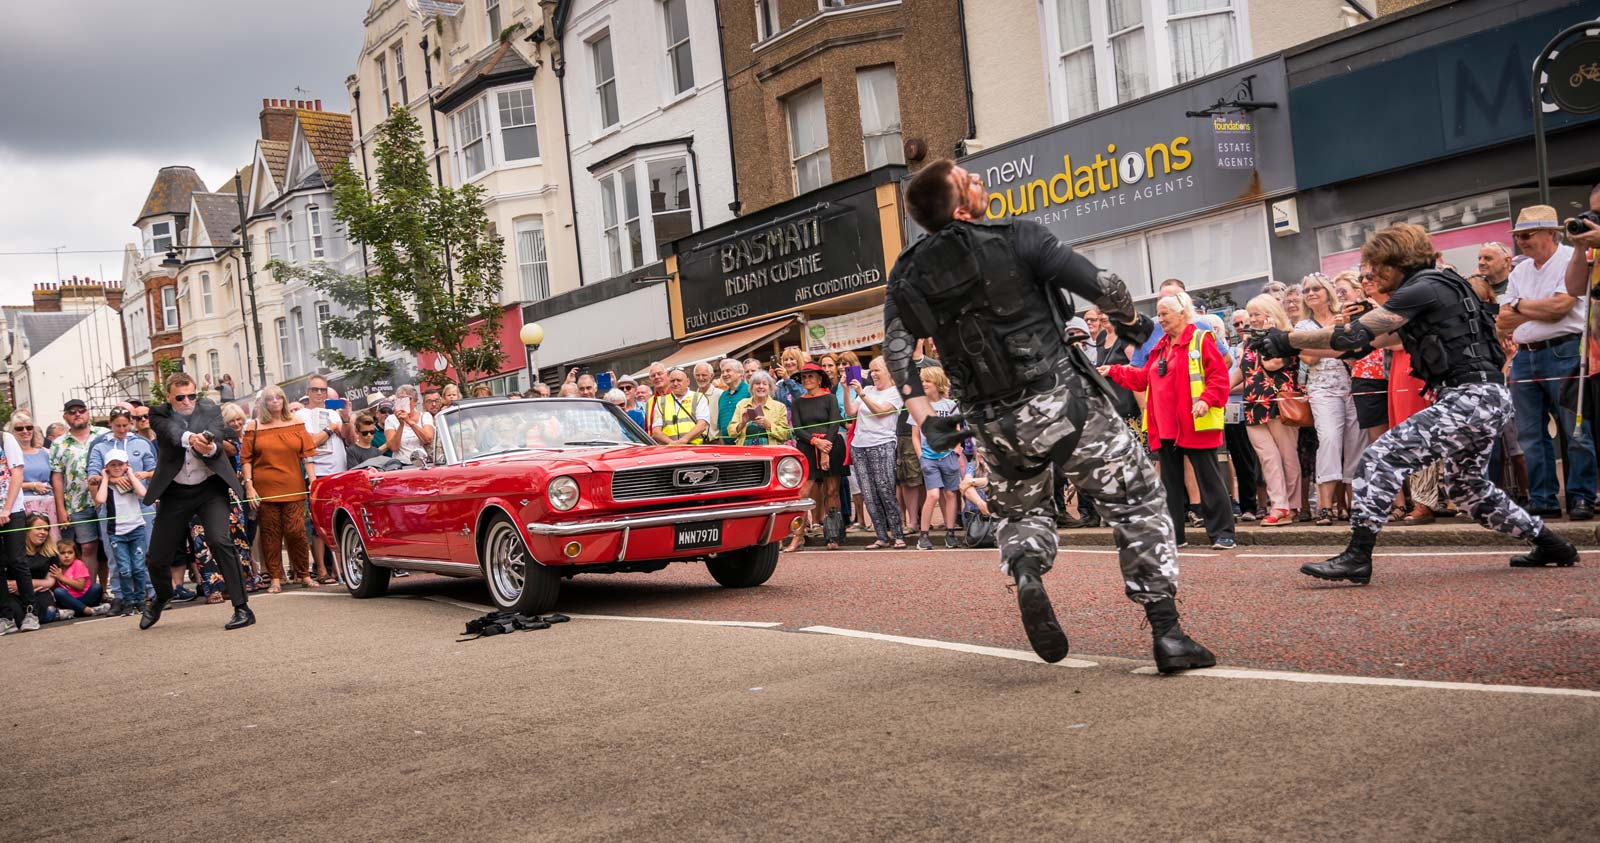 Bond stunt action in Bexhill Town Centre